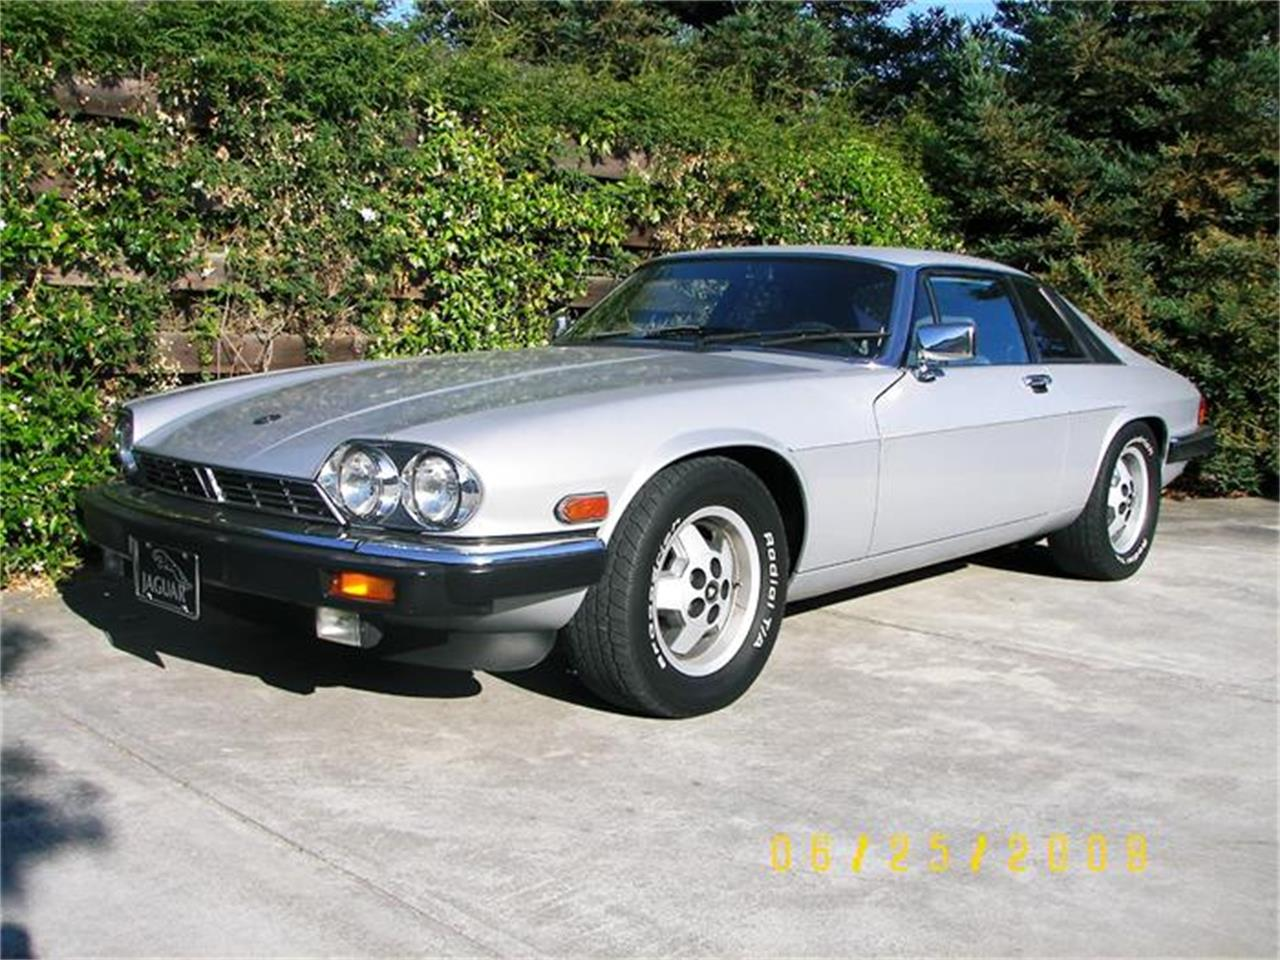 Large Picture of 1985 XJS - $7,500.00 - 2YG4